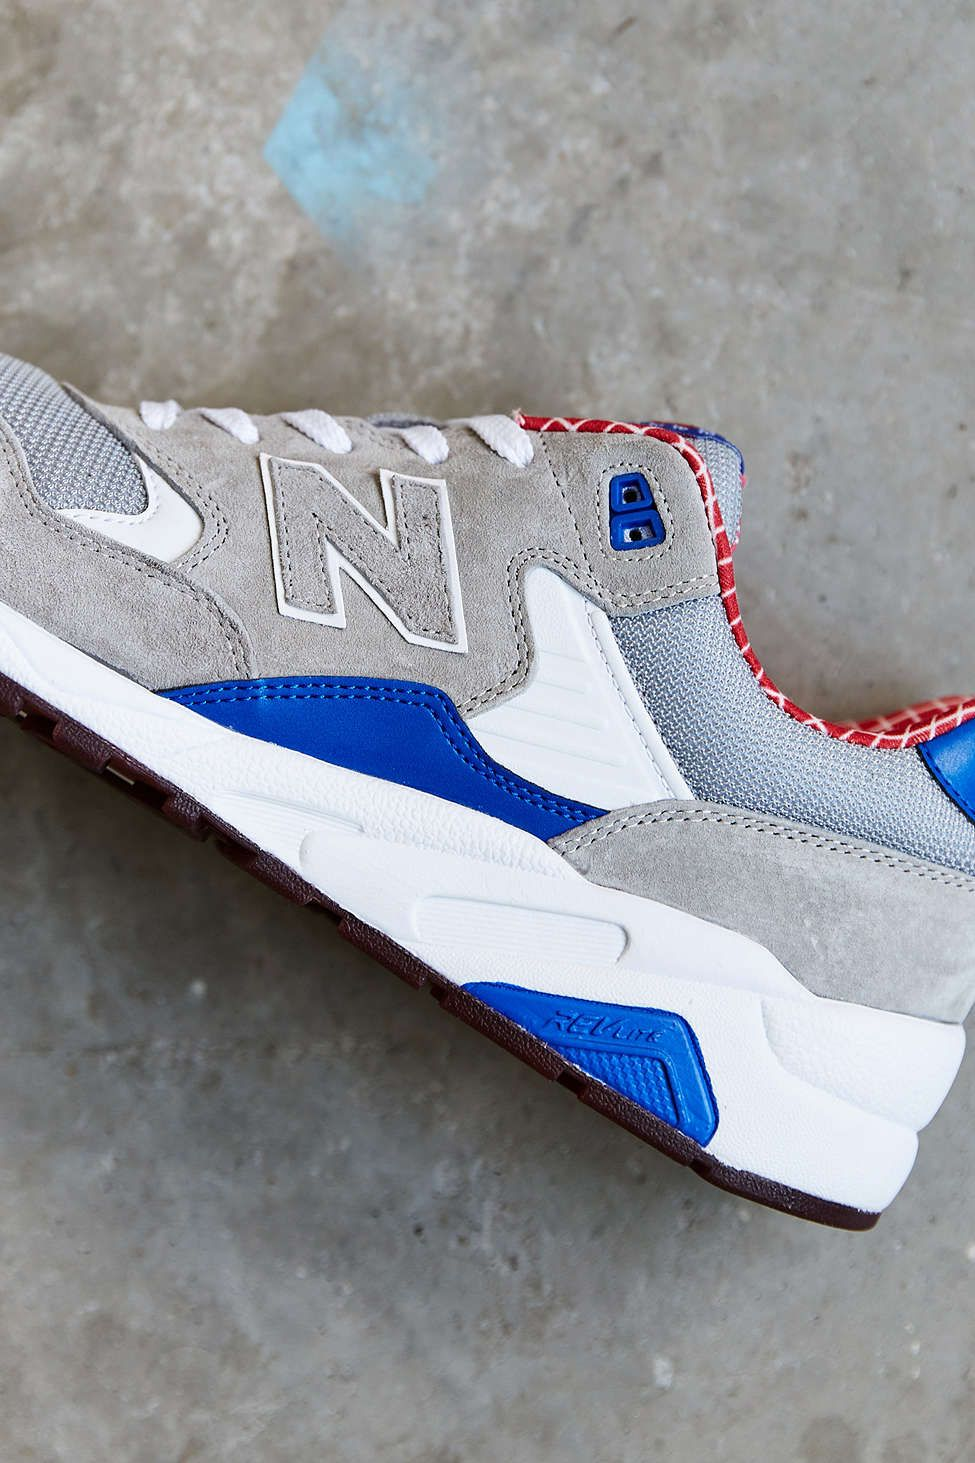 new concept 49842 b0e8b New Balance X Urban Outfitters 580: Blue/Red/Grey | Sneakers ...